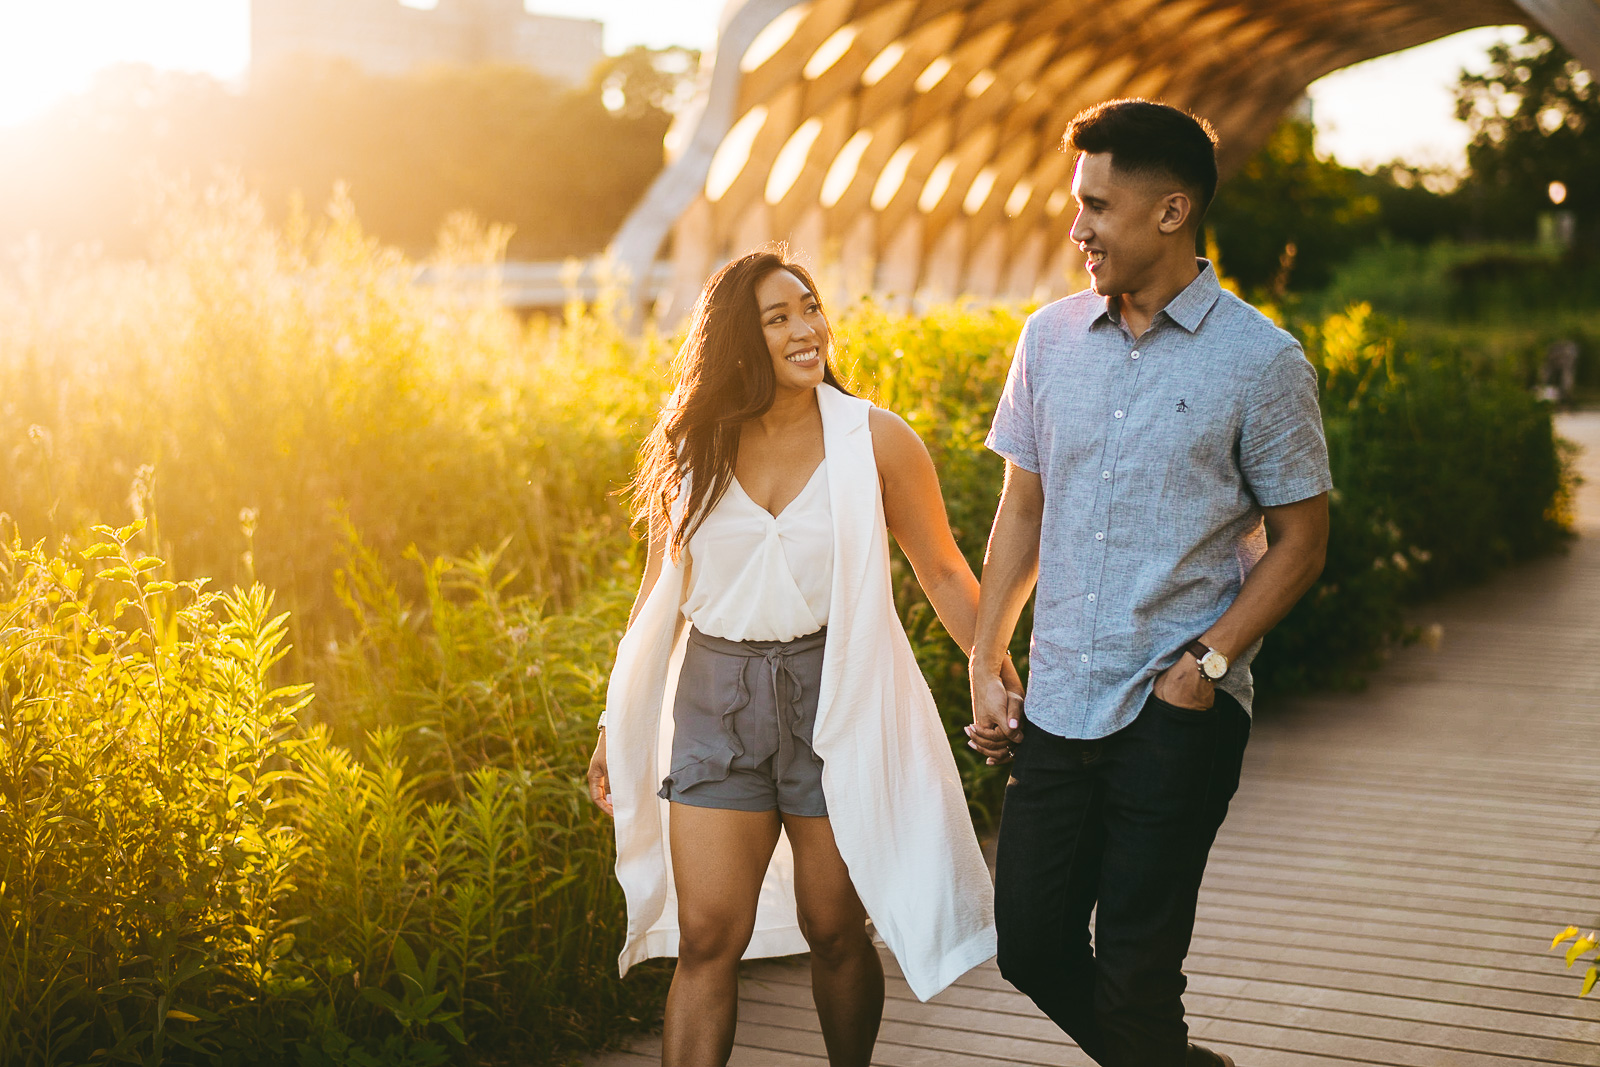 16 smiling at sunest - Sunset Engagement Photos // Francine + RJ